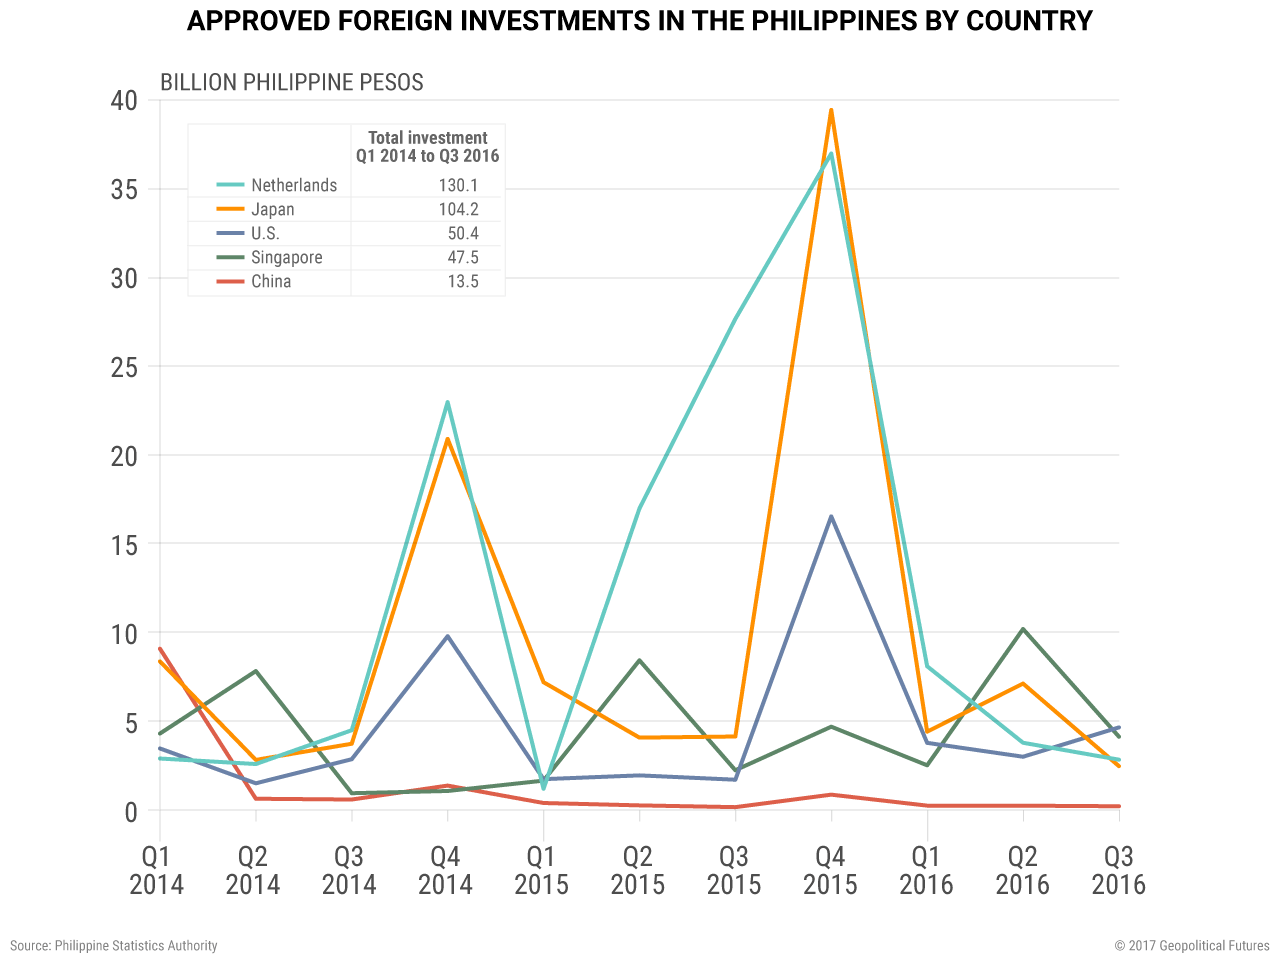 Approved Foreign Investments in the Philippines by Country